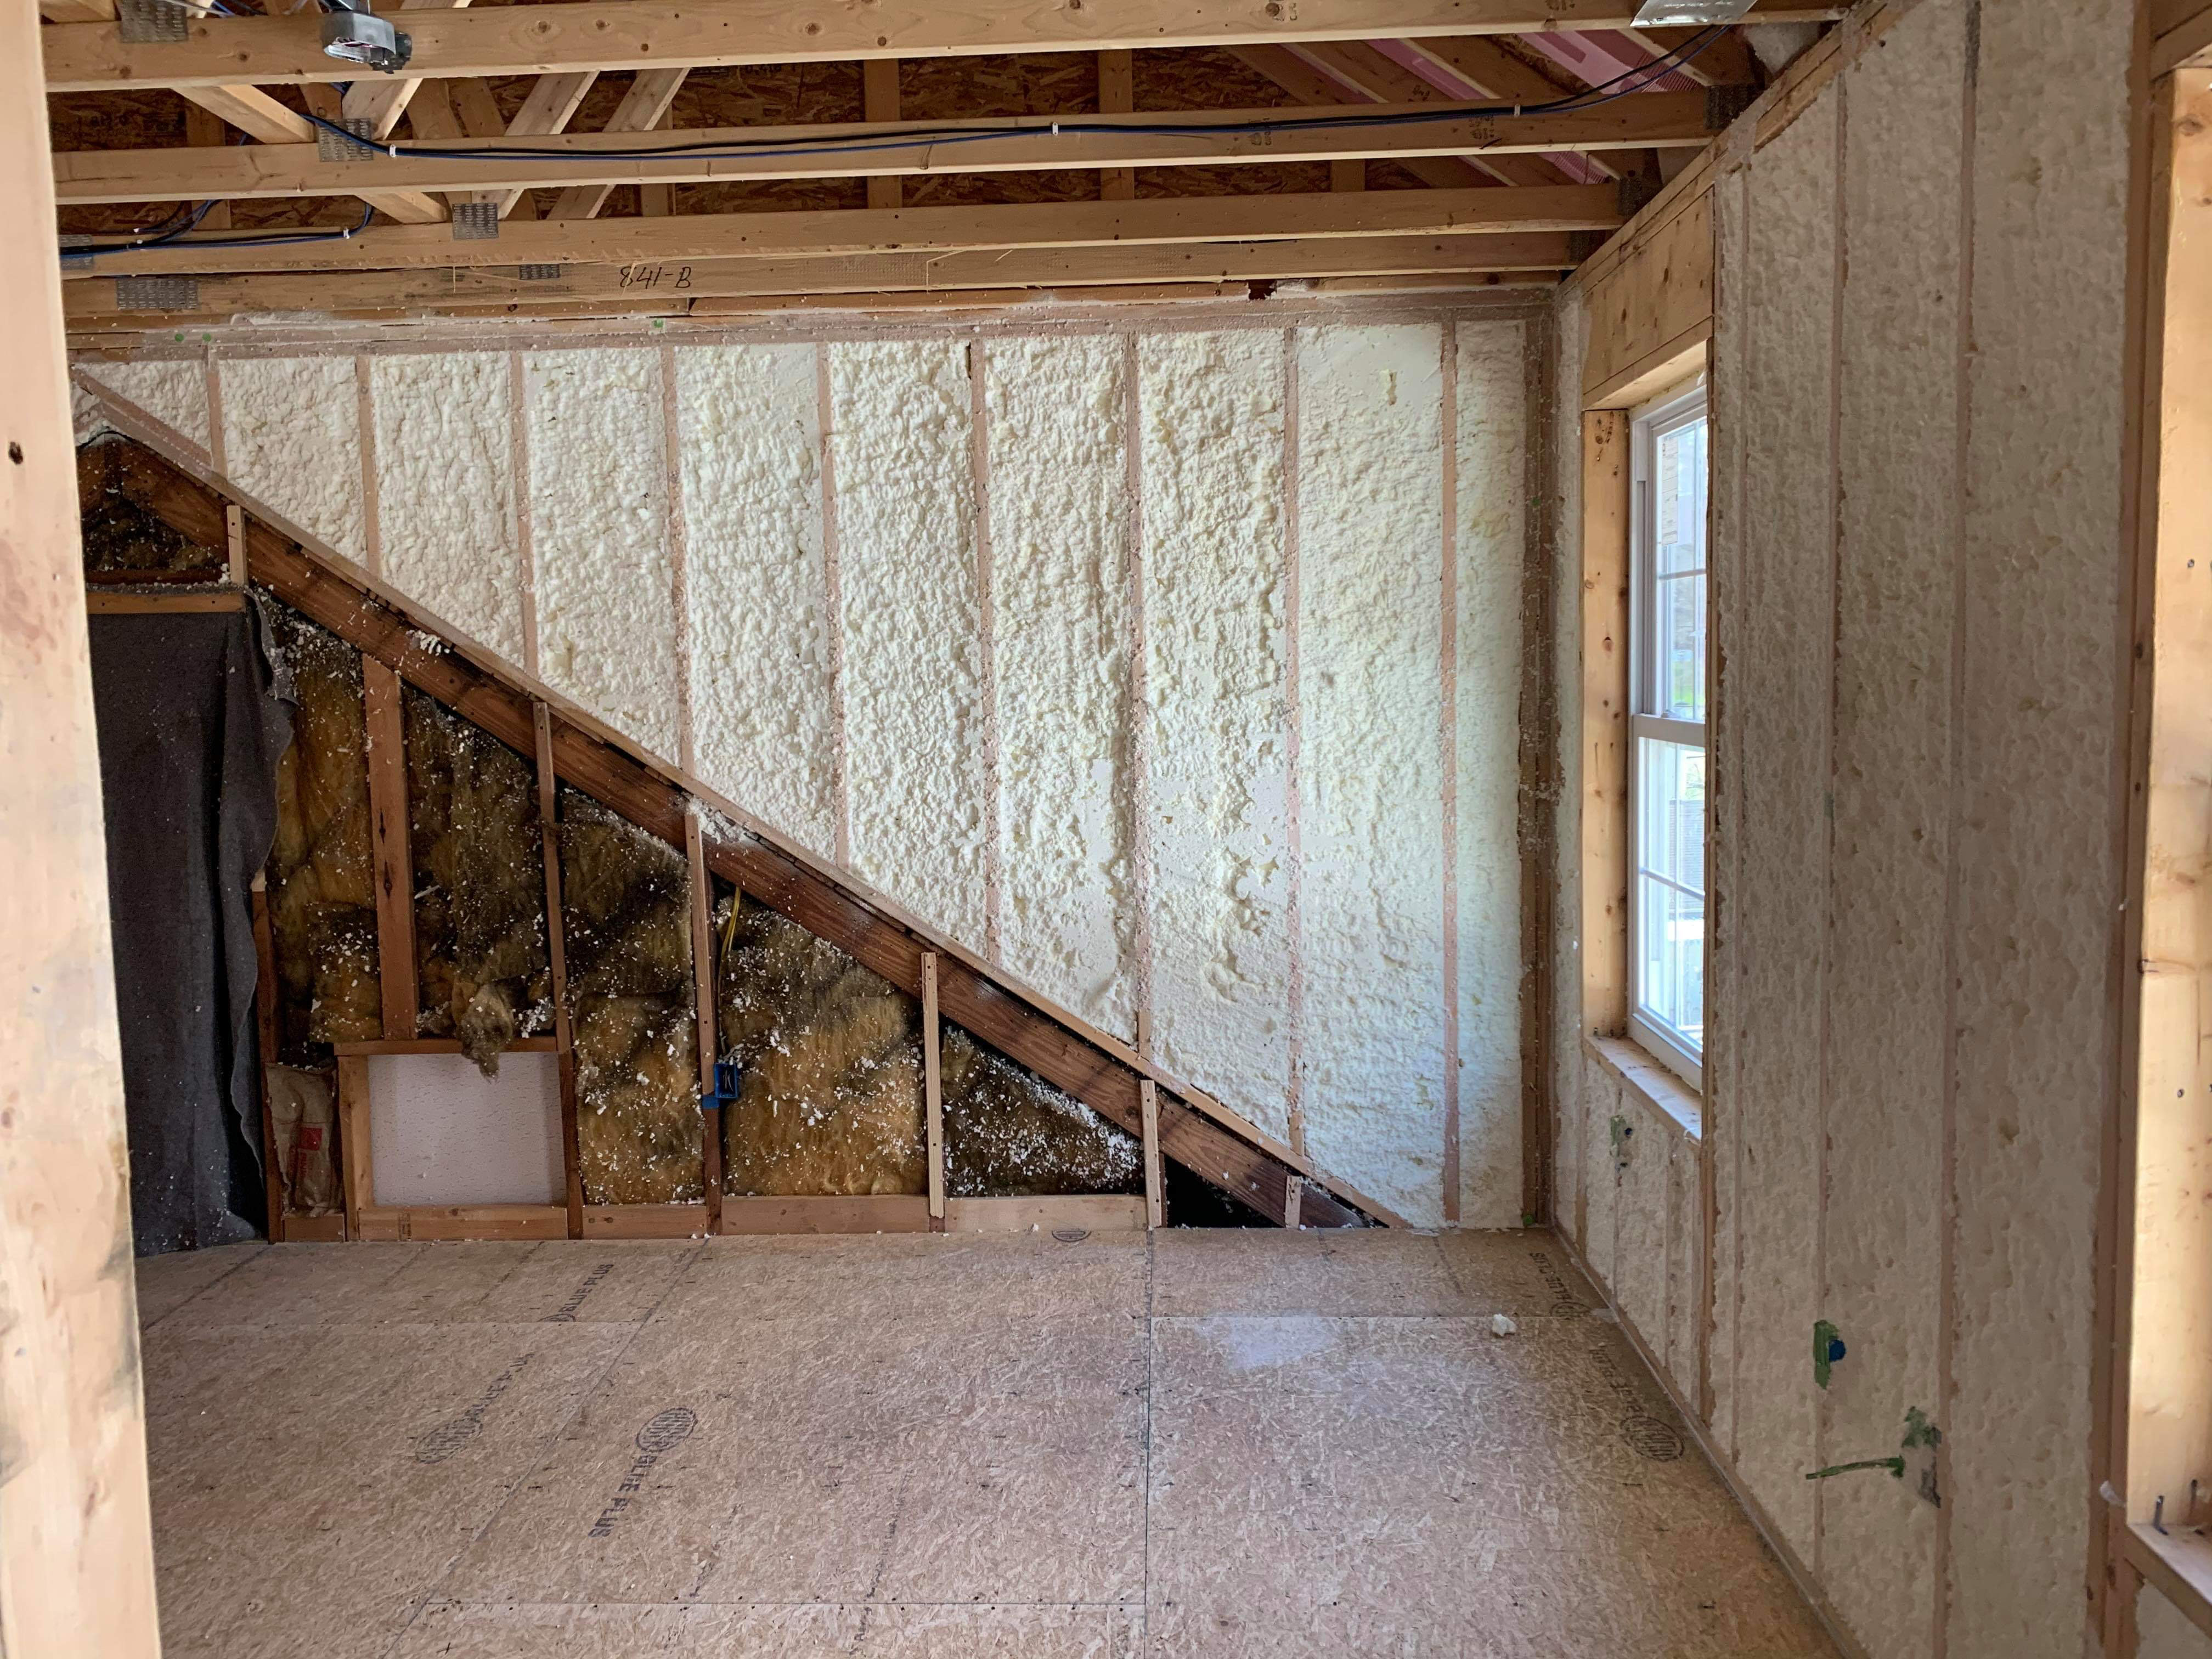 Difference between sprayfoam and regular insulation